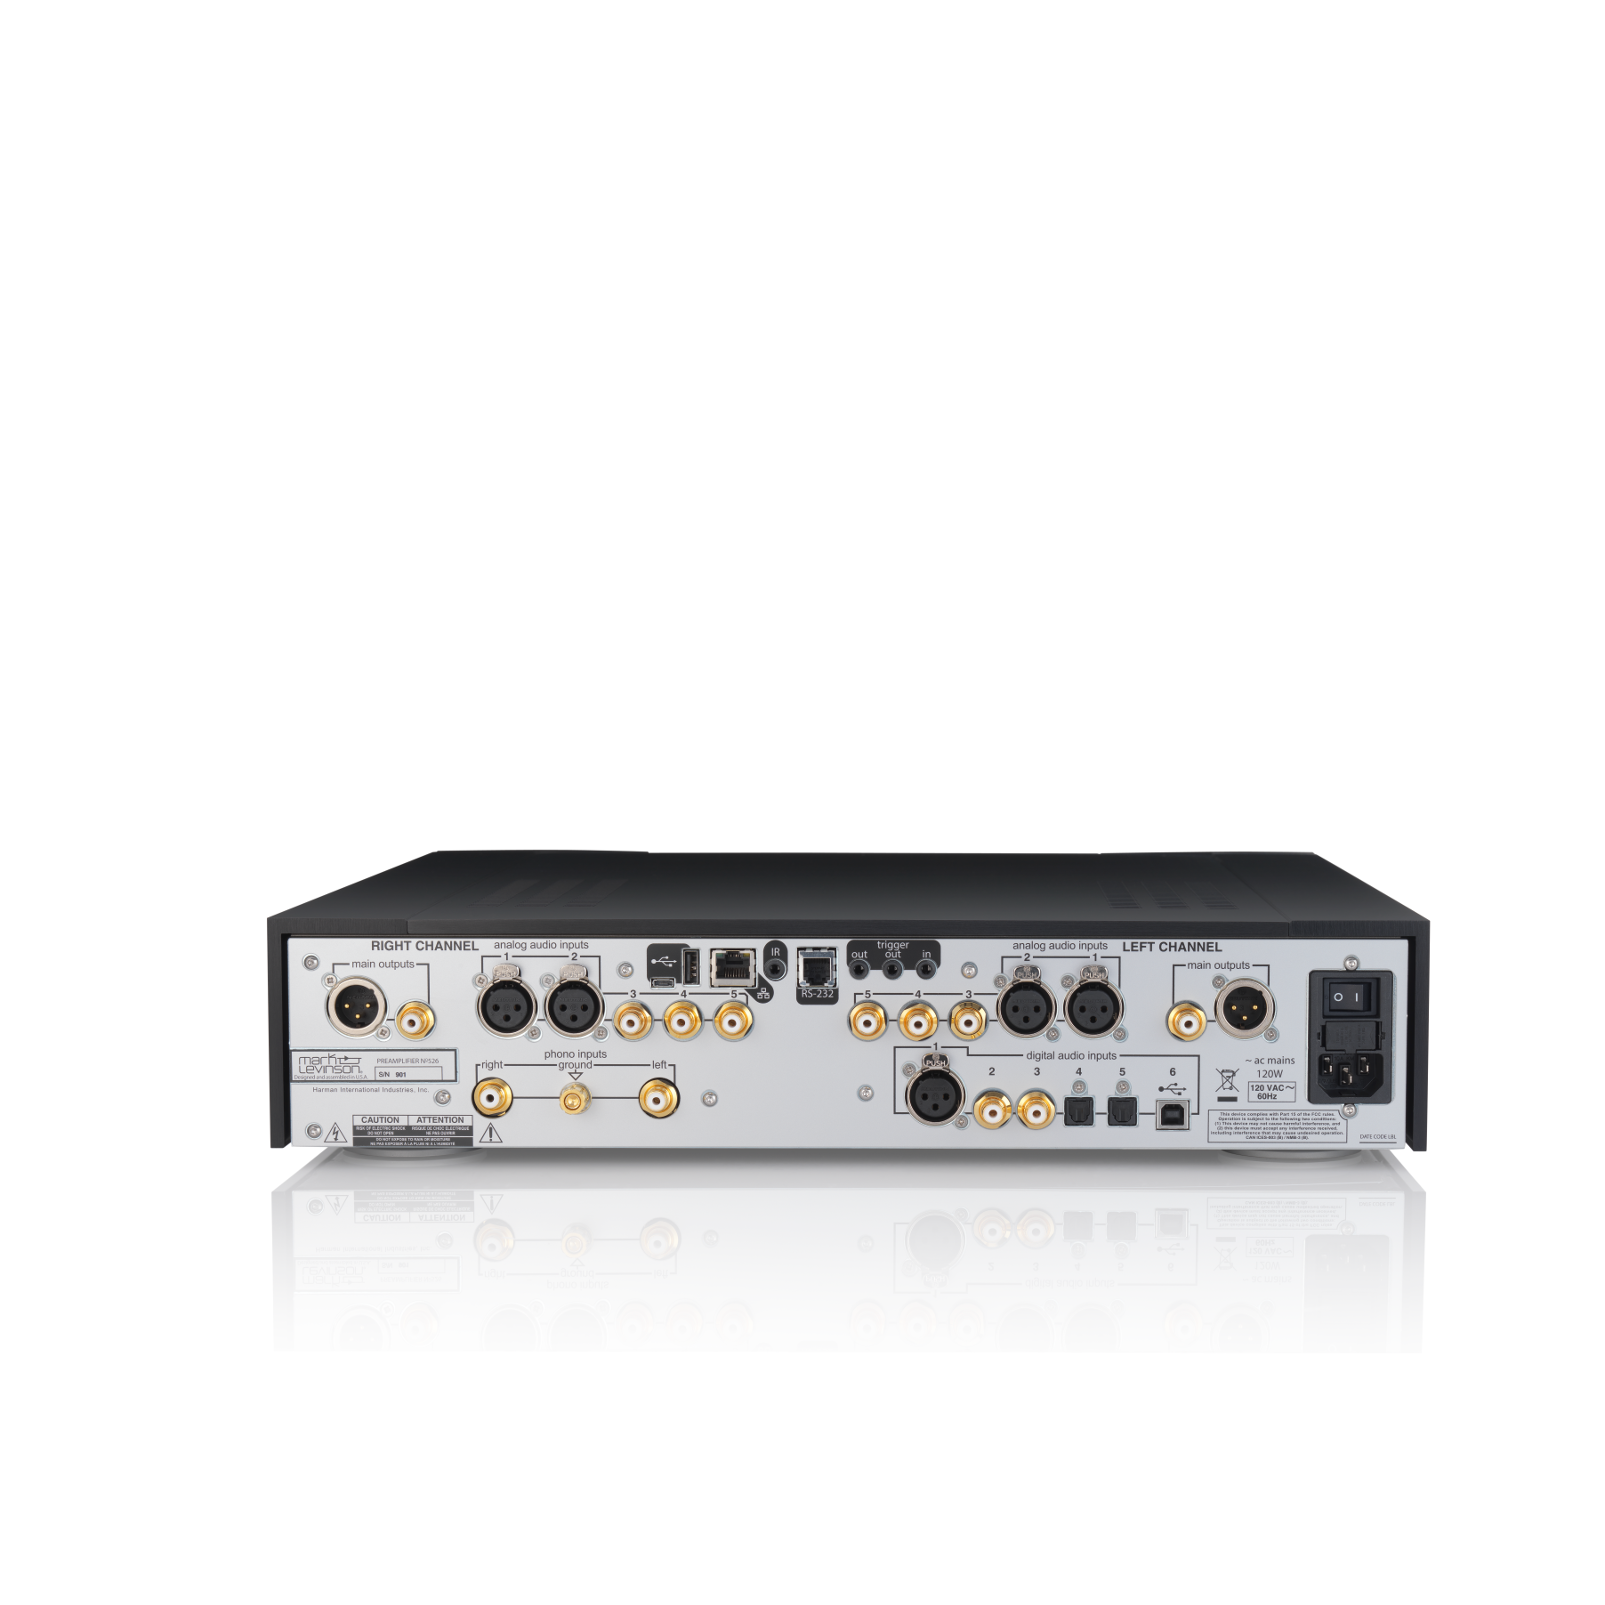 № 526 - Black - Dual-Monaural Preamplifier for Digital and Analog Sources - Back